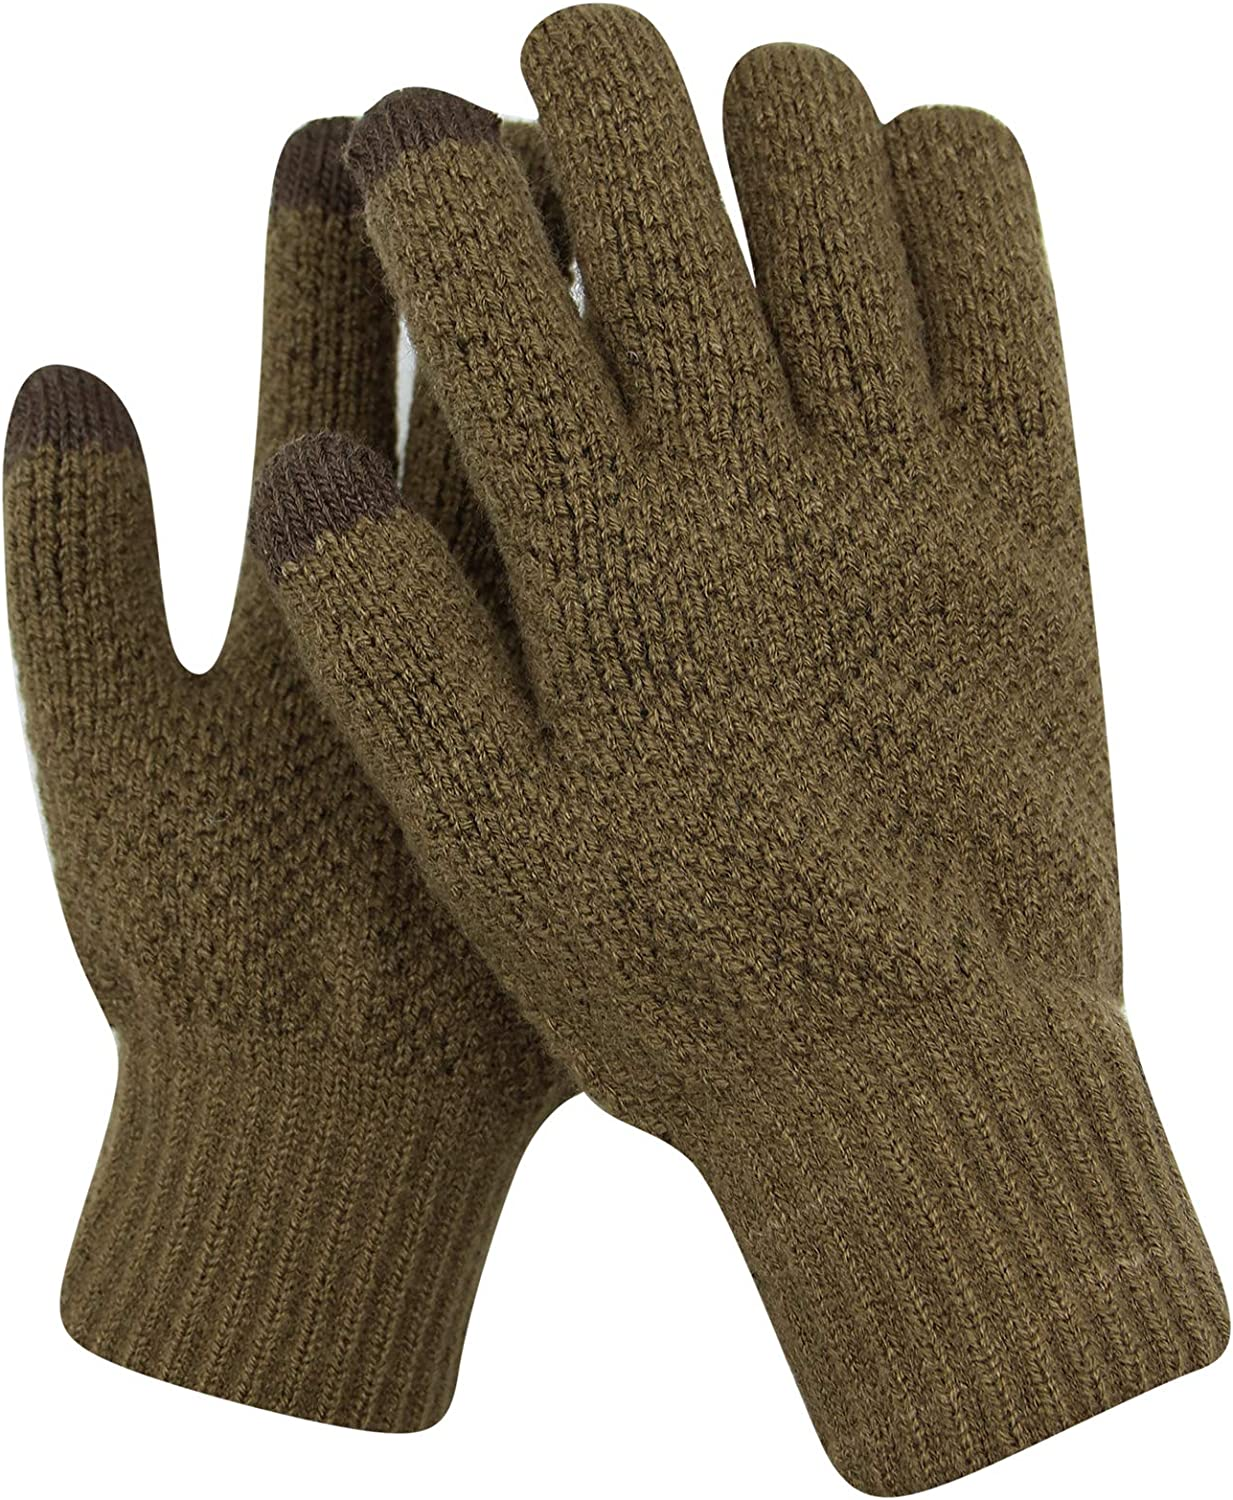 Women Multi-function Knitted Screen Winter Gloves Soft Warm Mitten for Smart phones Laptop Tablet